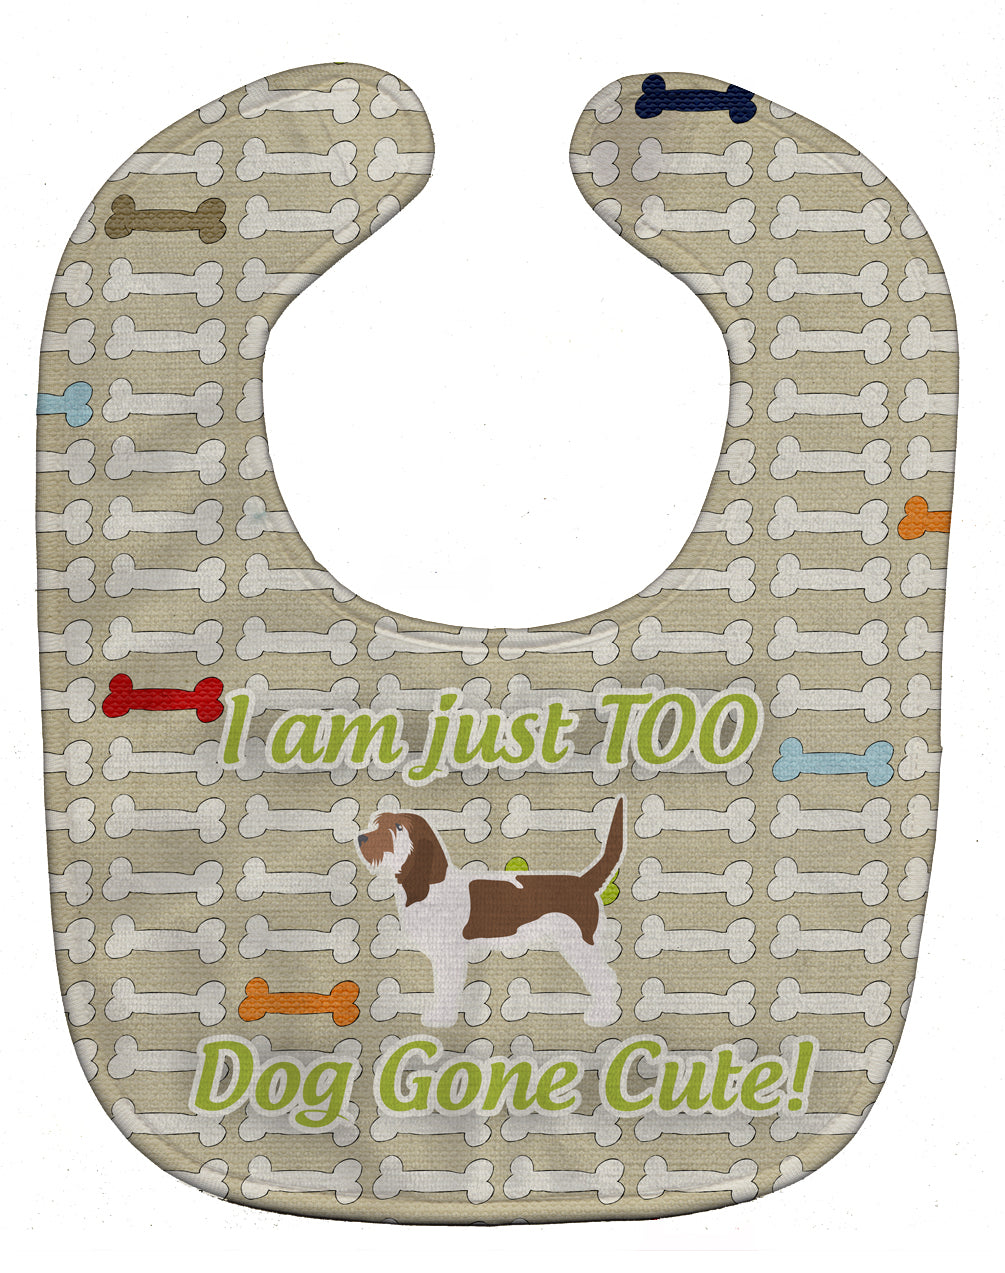 Grand Basset Griffon Vendeen Dog Gone Cute Baby Bib BB6495BIB by Caroline's Treasures